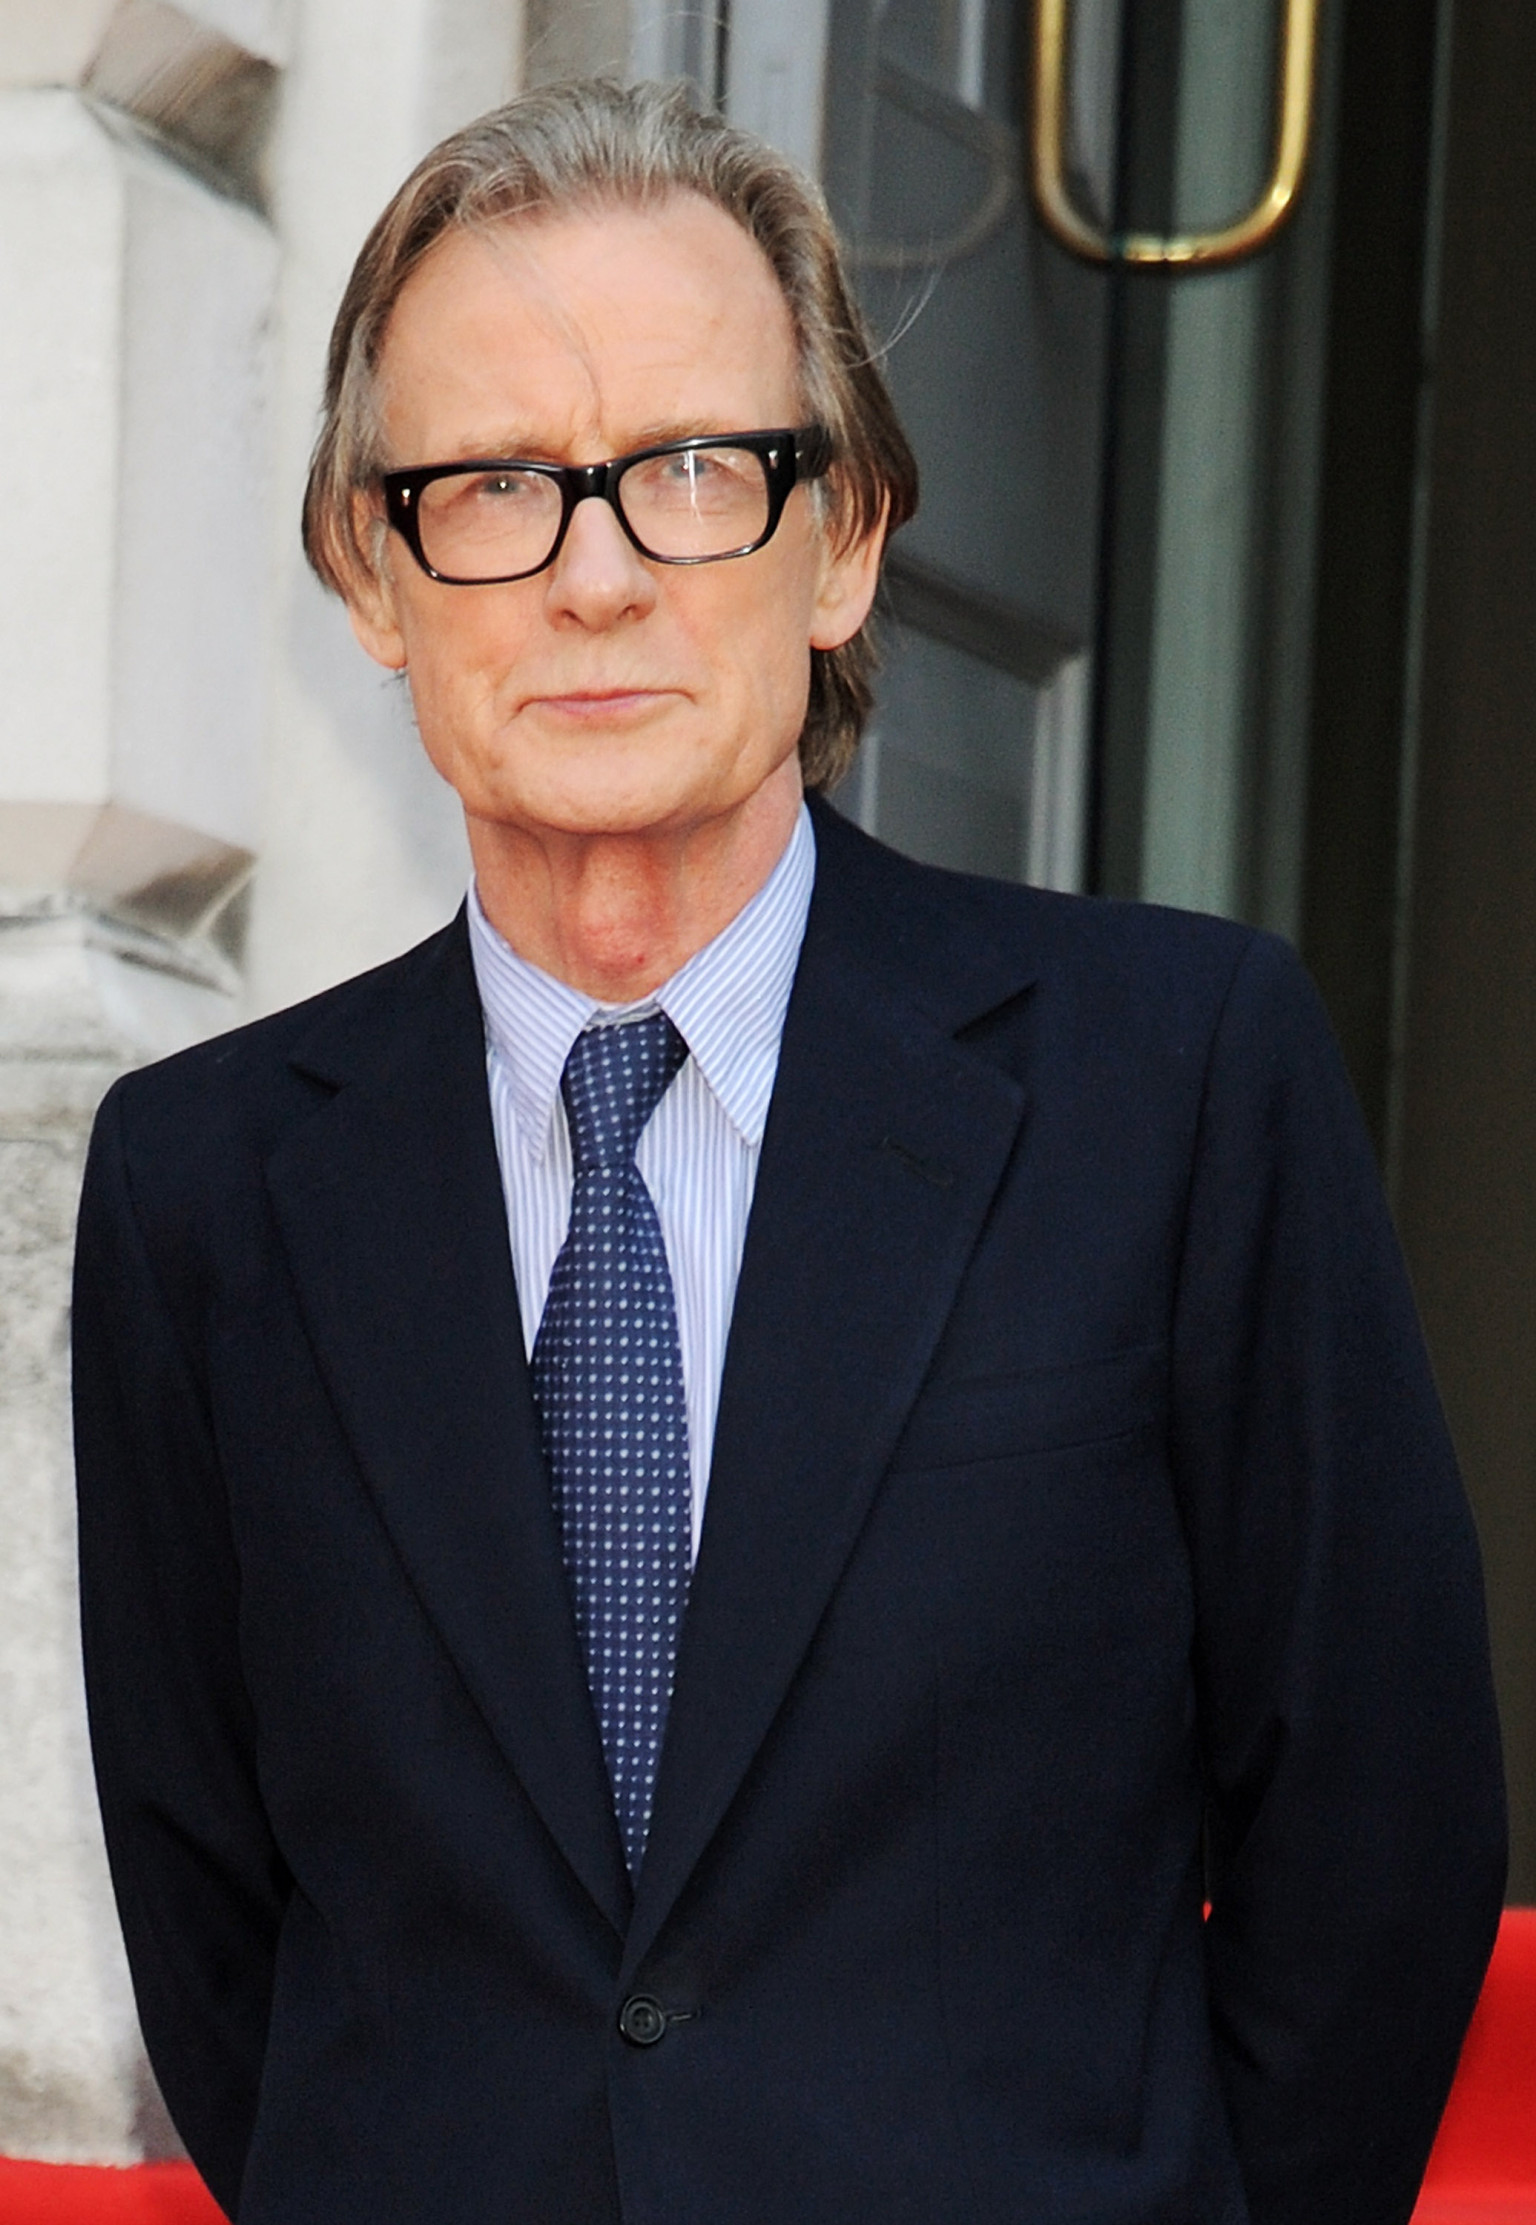 bill nighy twitterbill nighy love actually, bill nighy movies, bill nighy harry potter, bill nighy hands, bill nighy song, bill nighy fingers, bill nighy instagram, bill nighy potter, bill nighy hugh grant movie, bill nighy ken ham, bill nighy illness, bill nighy height, bill nighy tumblr, bill nighy the boat that rocked, bill nighy twitter, bill nighy andrew lincoln, bill nighy interview, bill nighy young, bill nighy pirates of the caribbean, bill nighy christmas